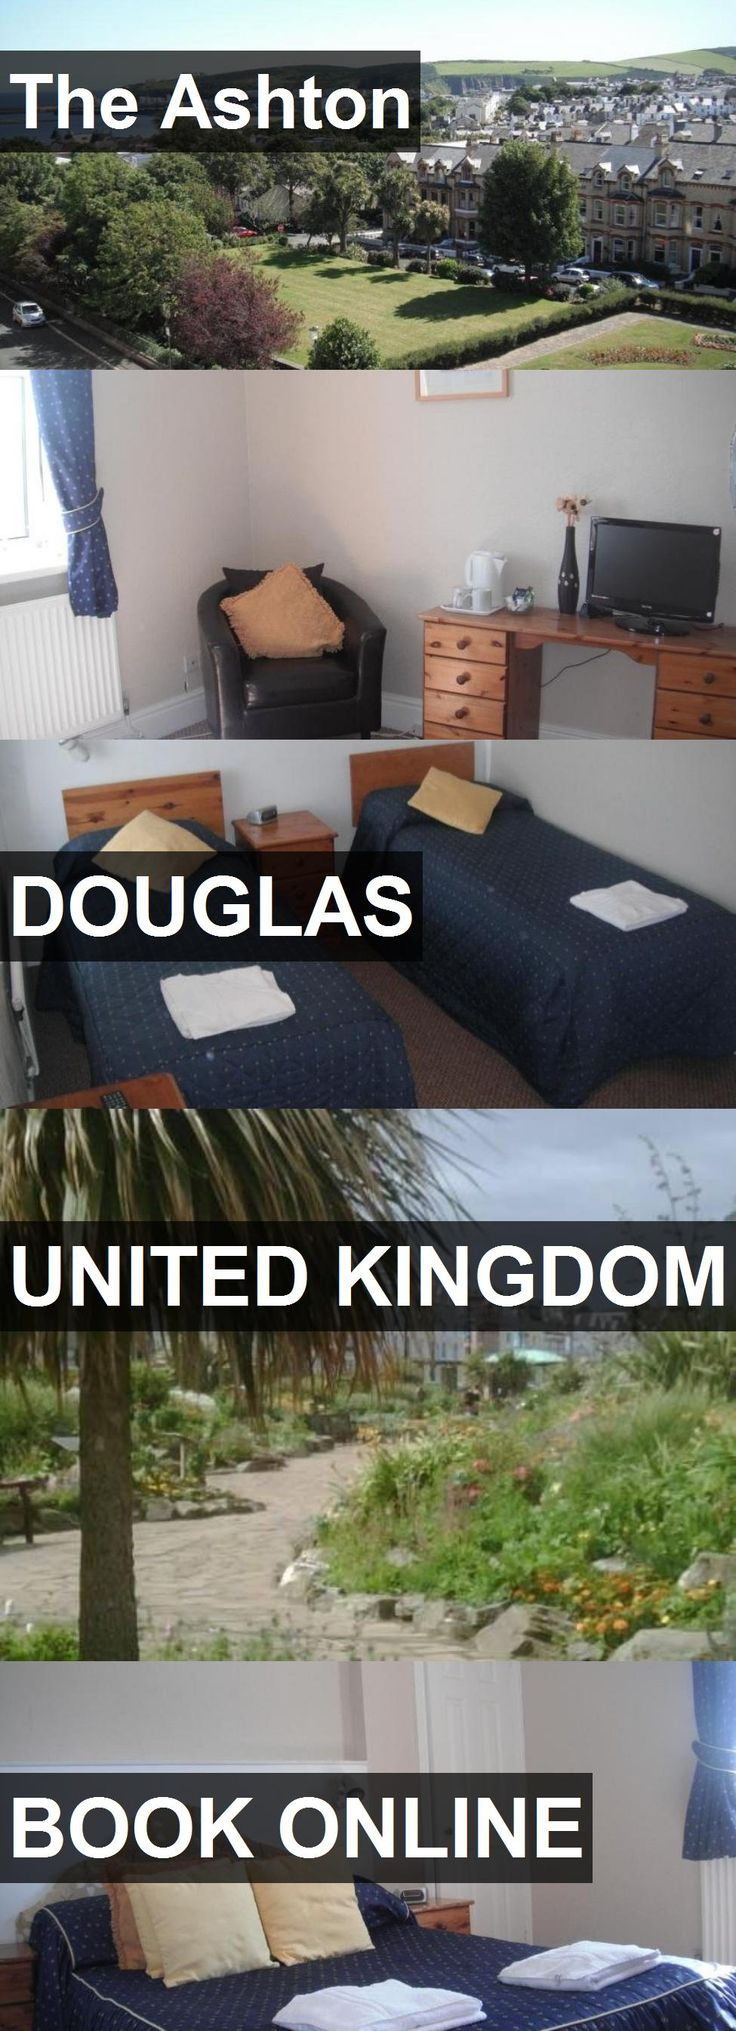 Hotel The Ashton in Douglas, United Kingdom. For more information, photos, reviews and best prices please follow the link. #UnitedKingdom #Douglas #TheAshton #hotel #travel #vacation